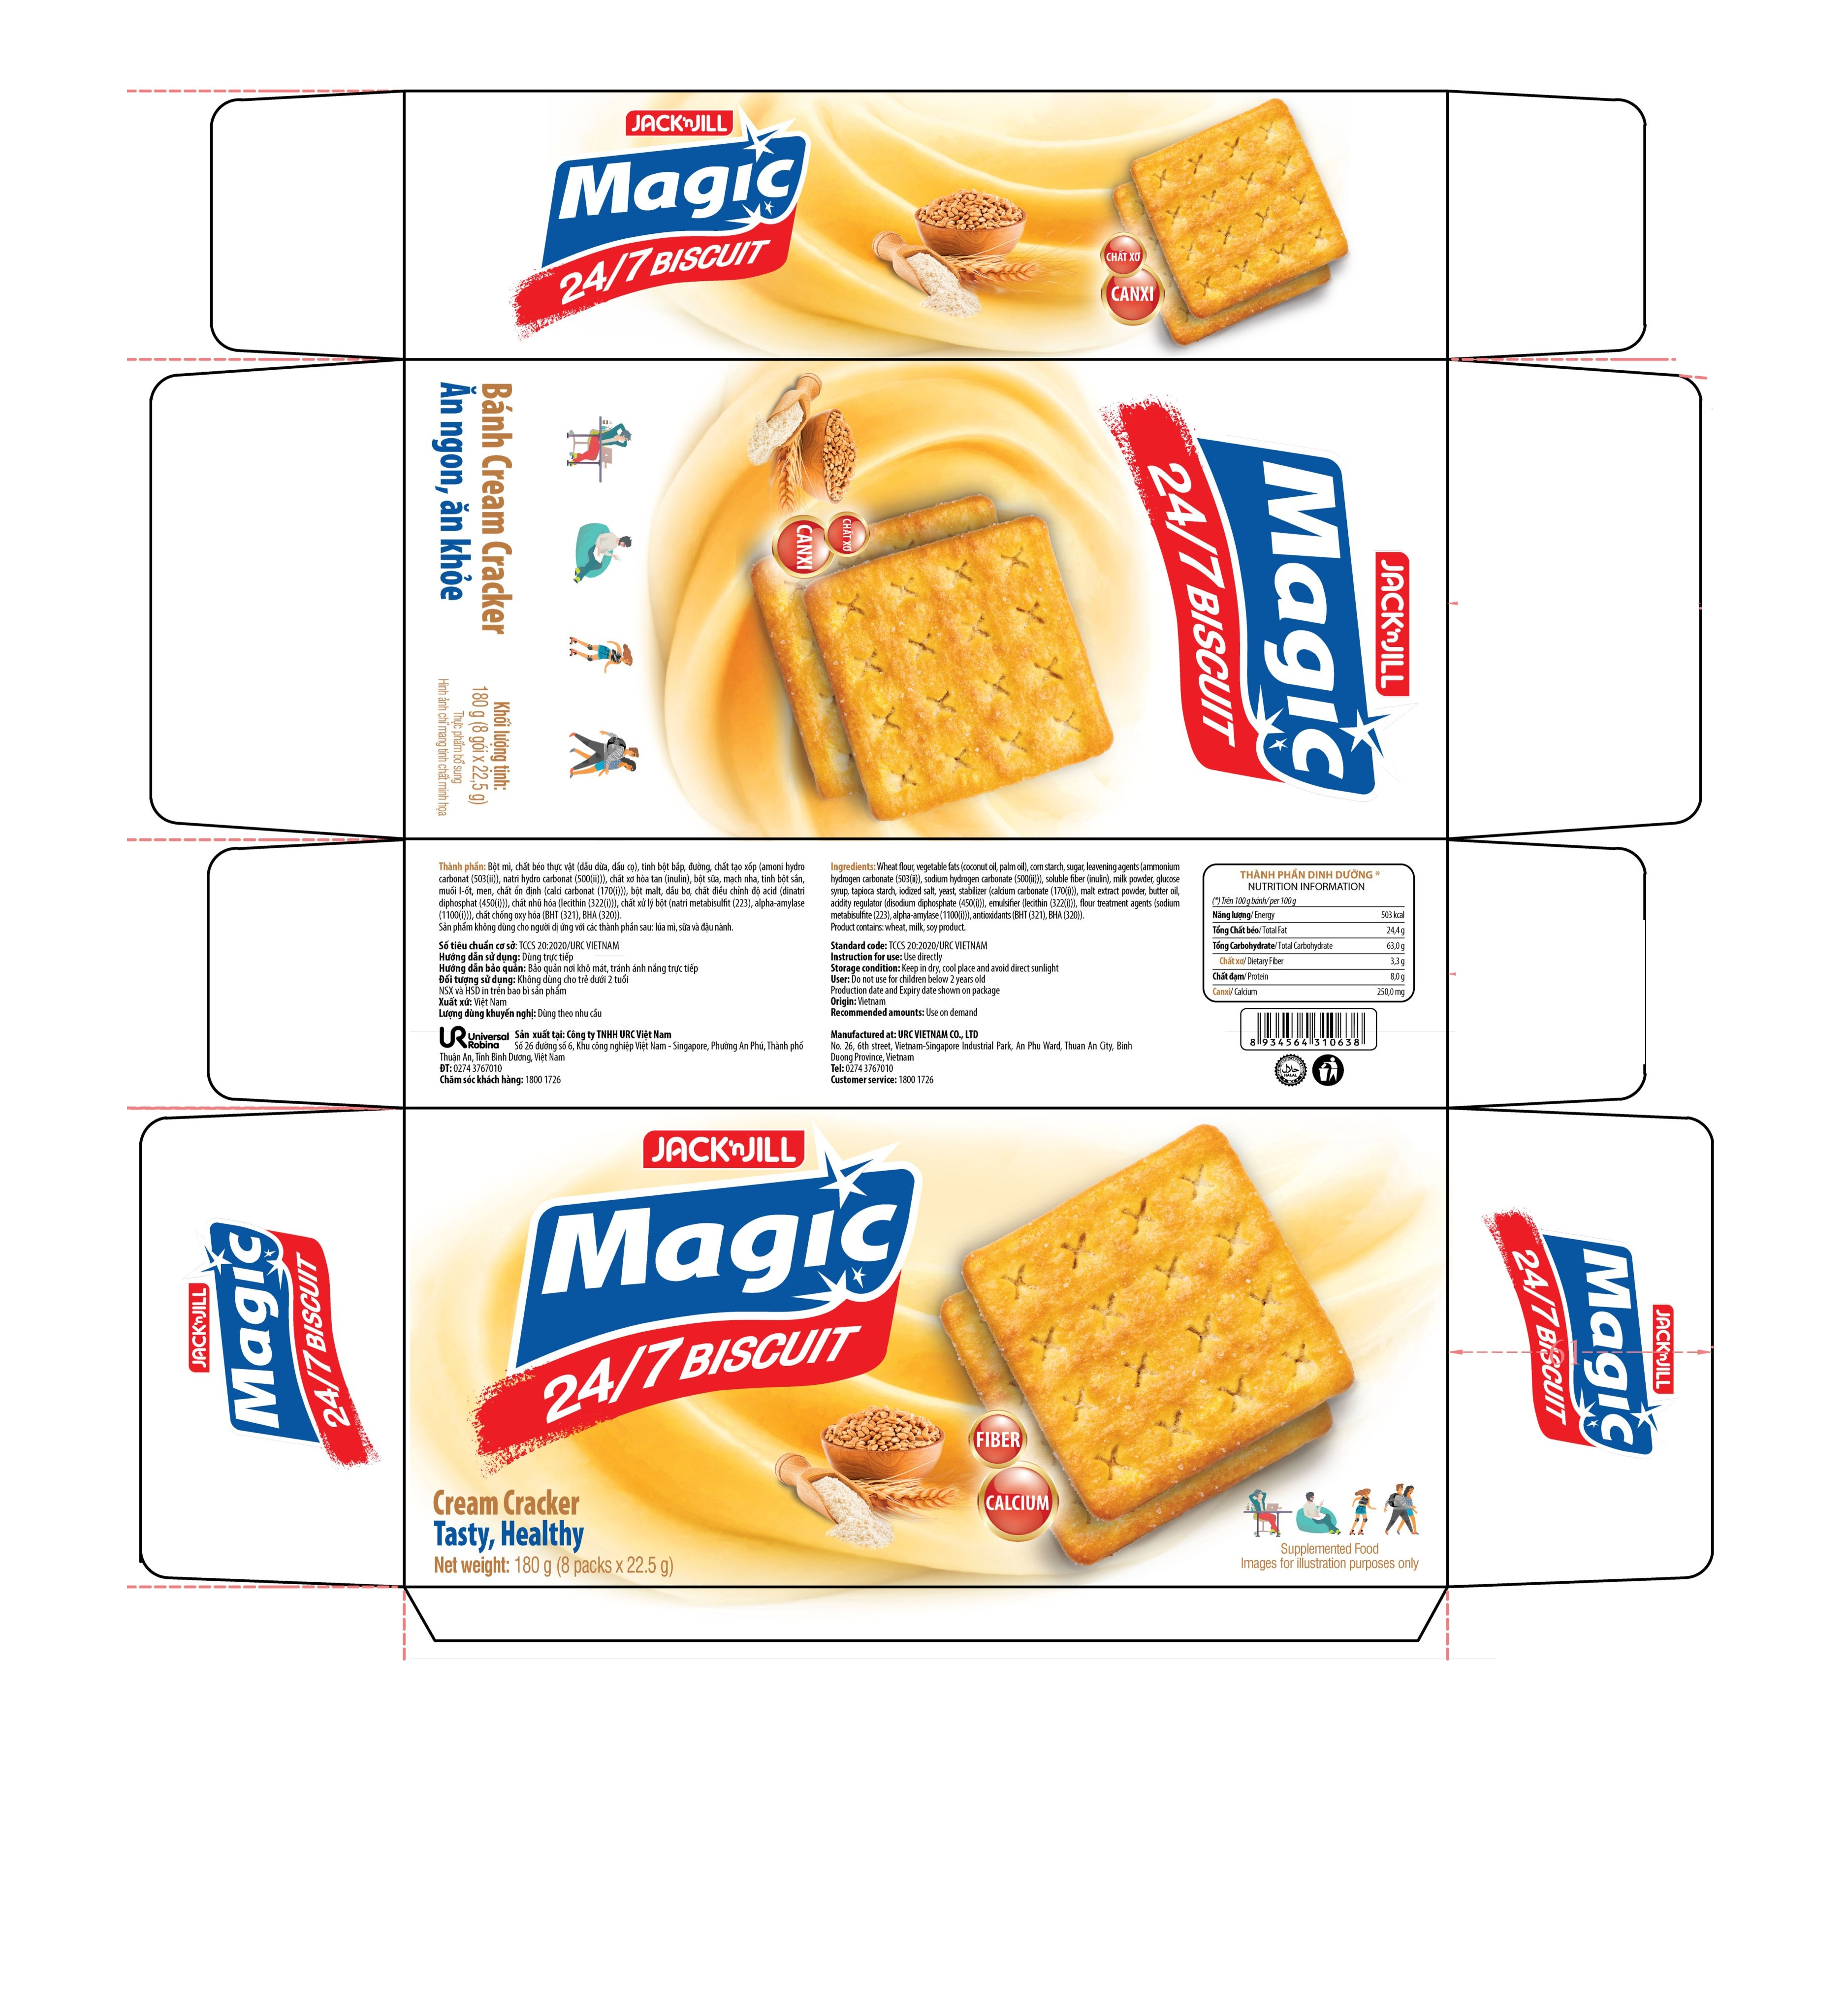 New product announcement MAGIC 24/7 CREAM CRACKER